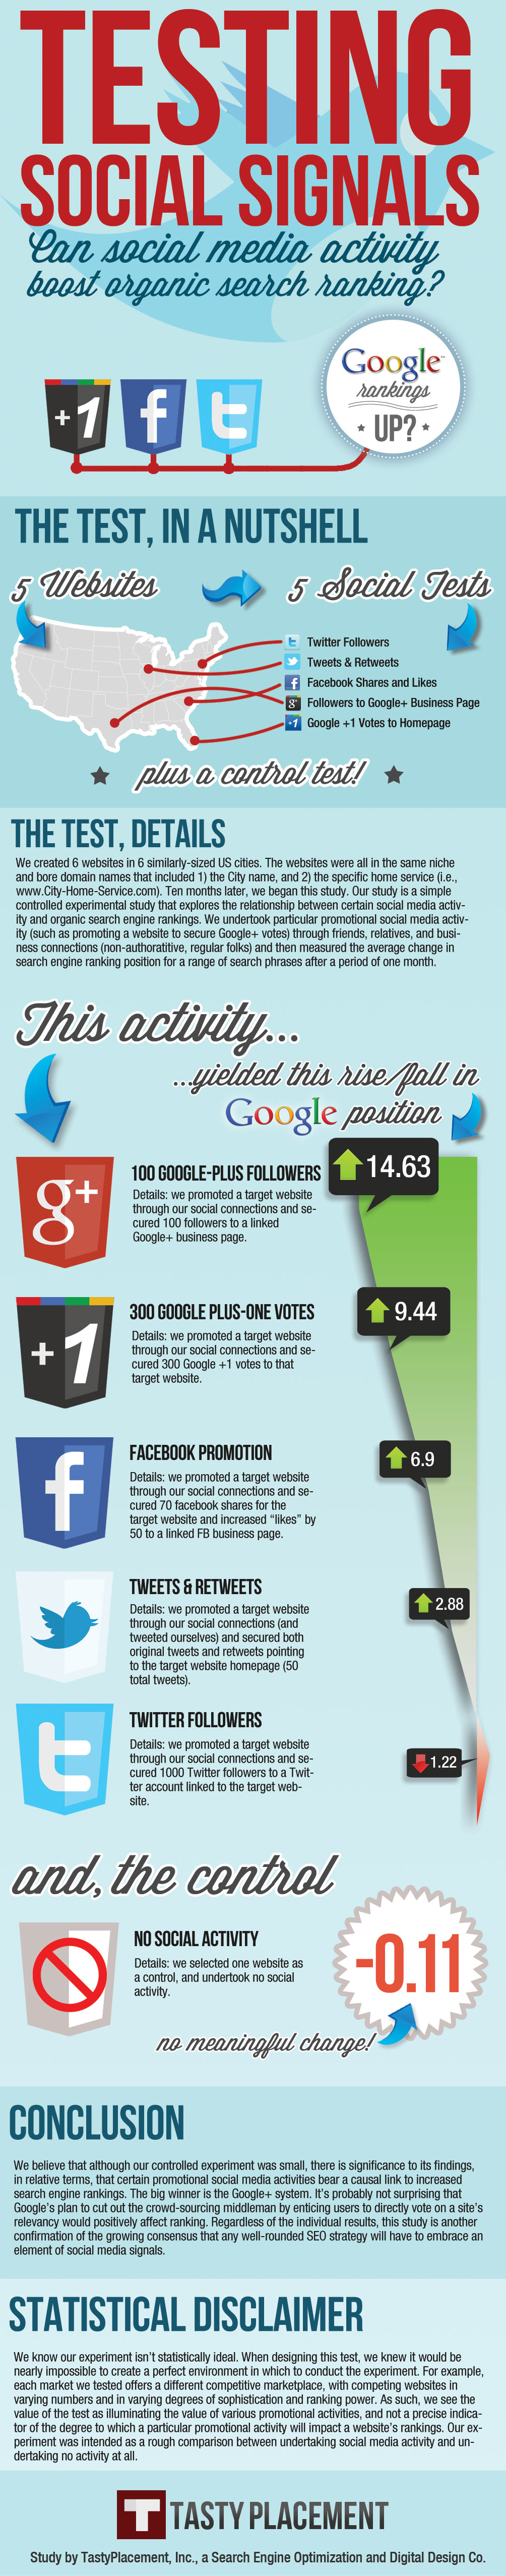 Social Media Boosts Organic Search Results [Infographic] image social media boosts organic search ranking